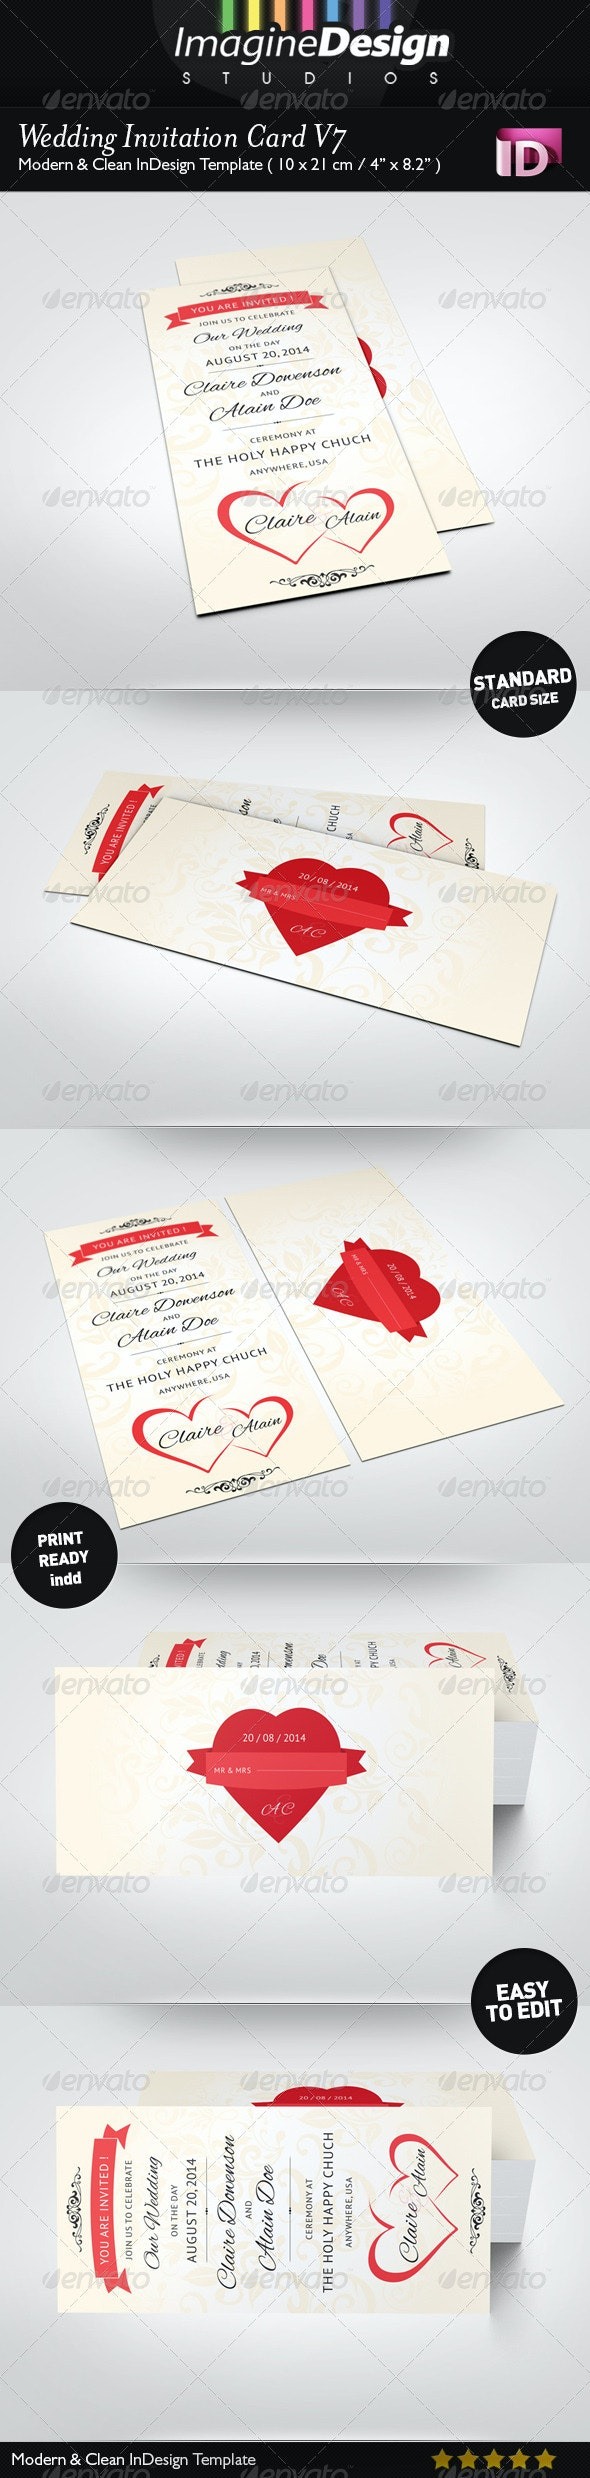 Wedding Invitation Card V7 - Weddings Cards & Invites